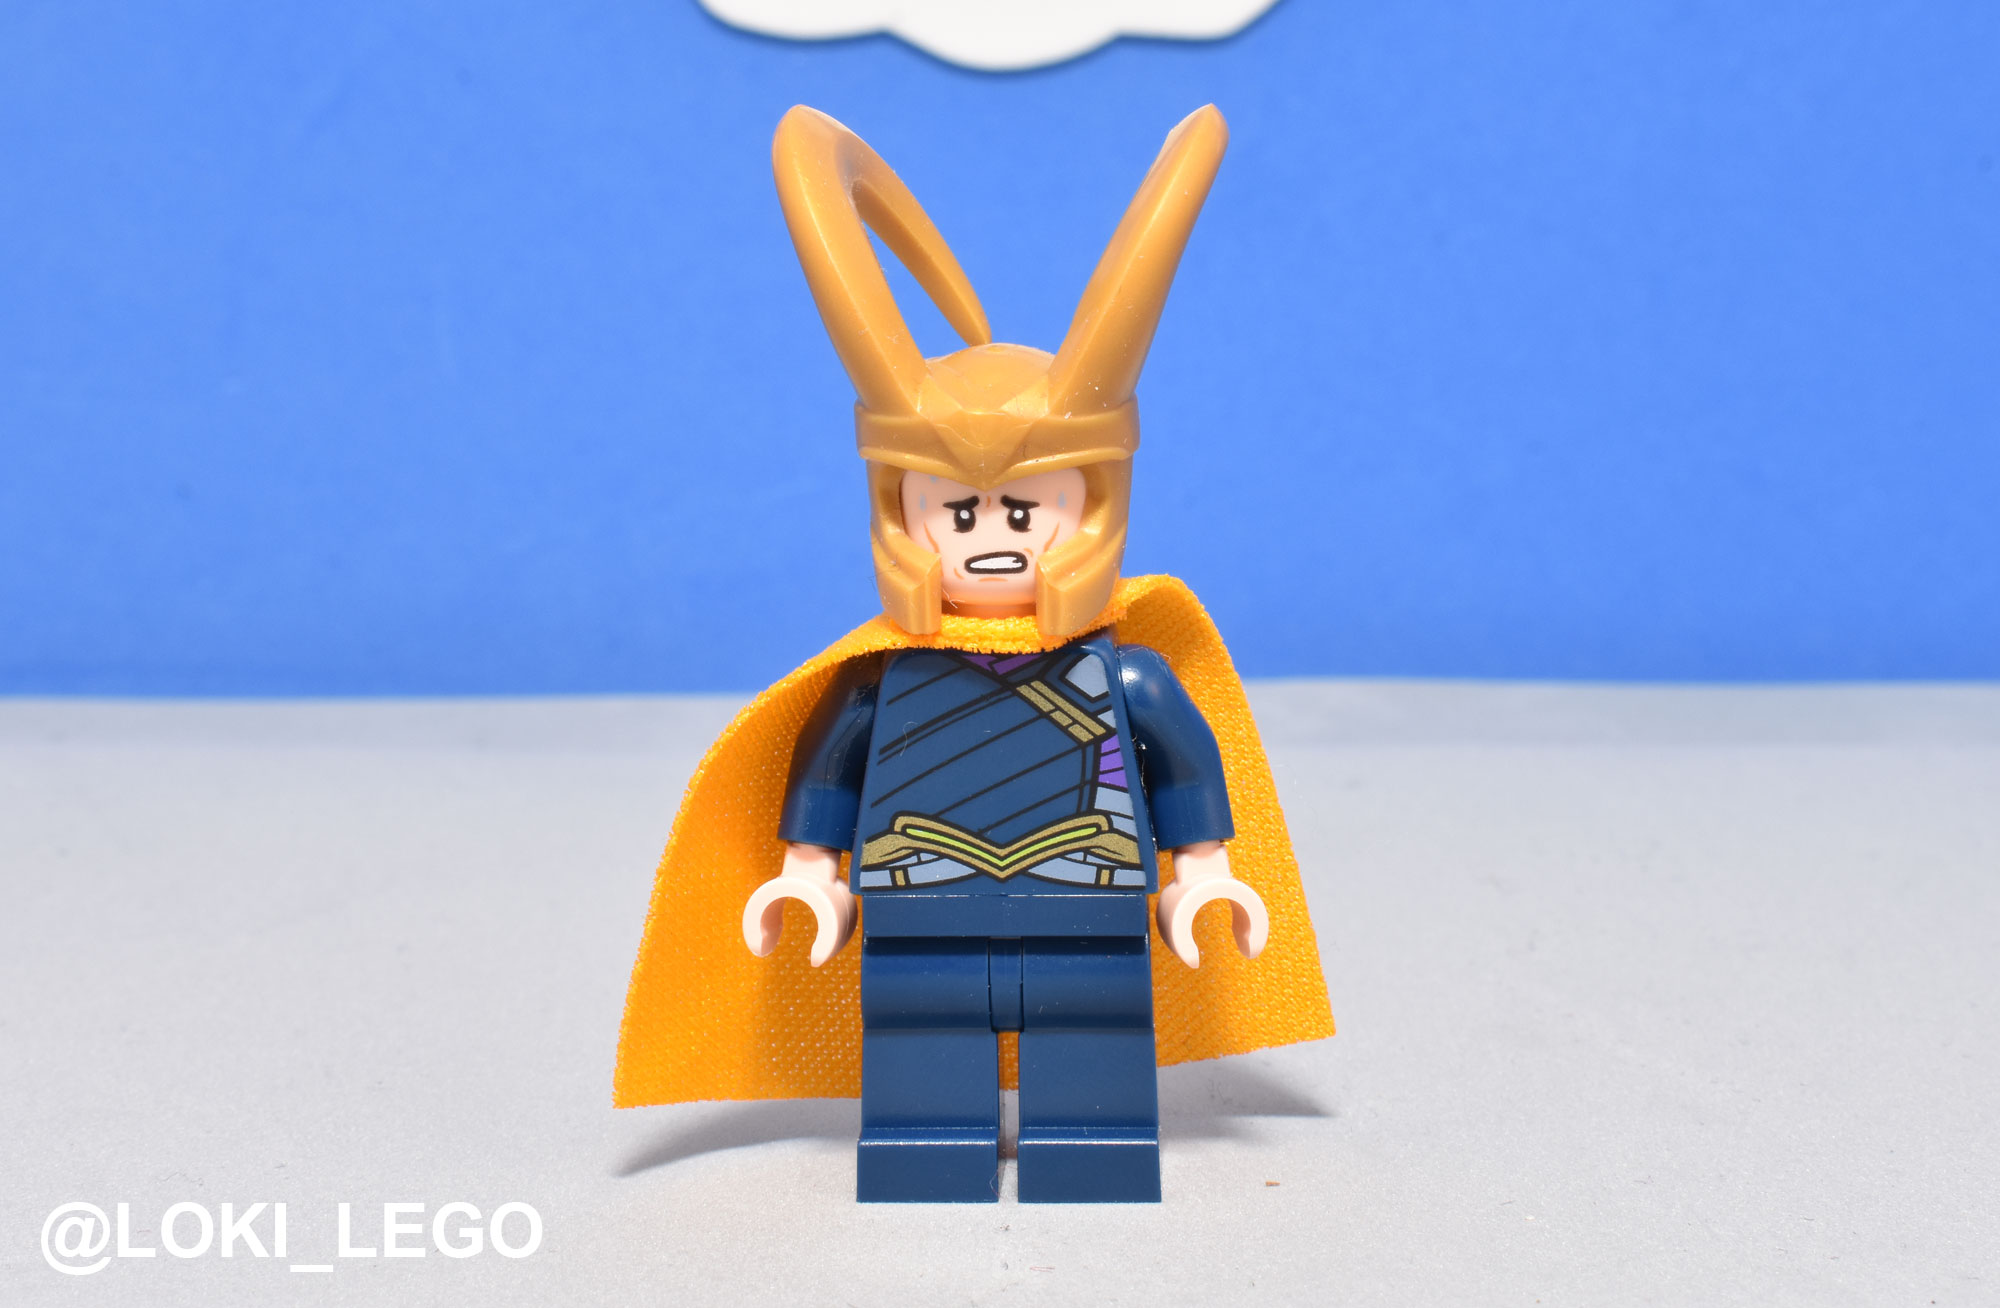 A First Look at the New Lego Loki from the Thor vs. Hulk ...